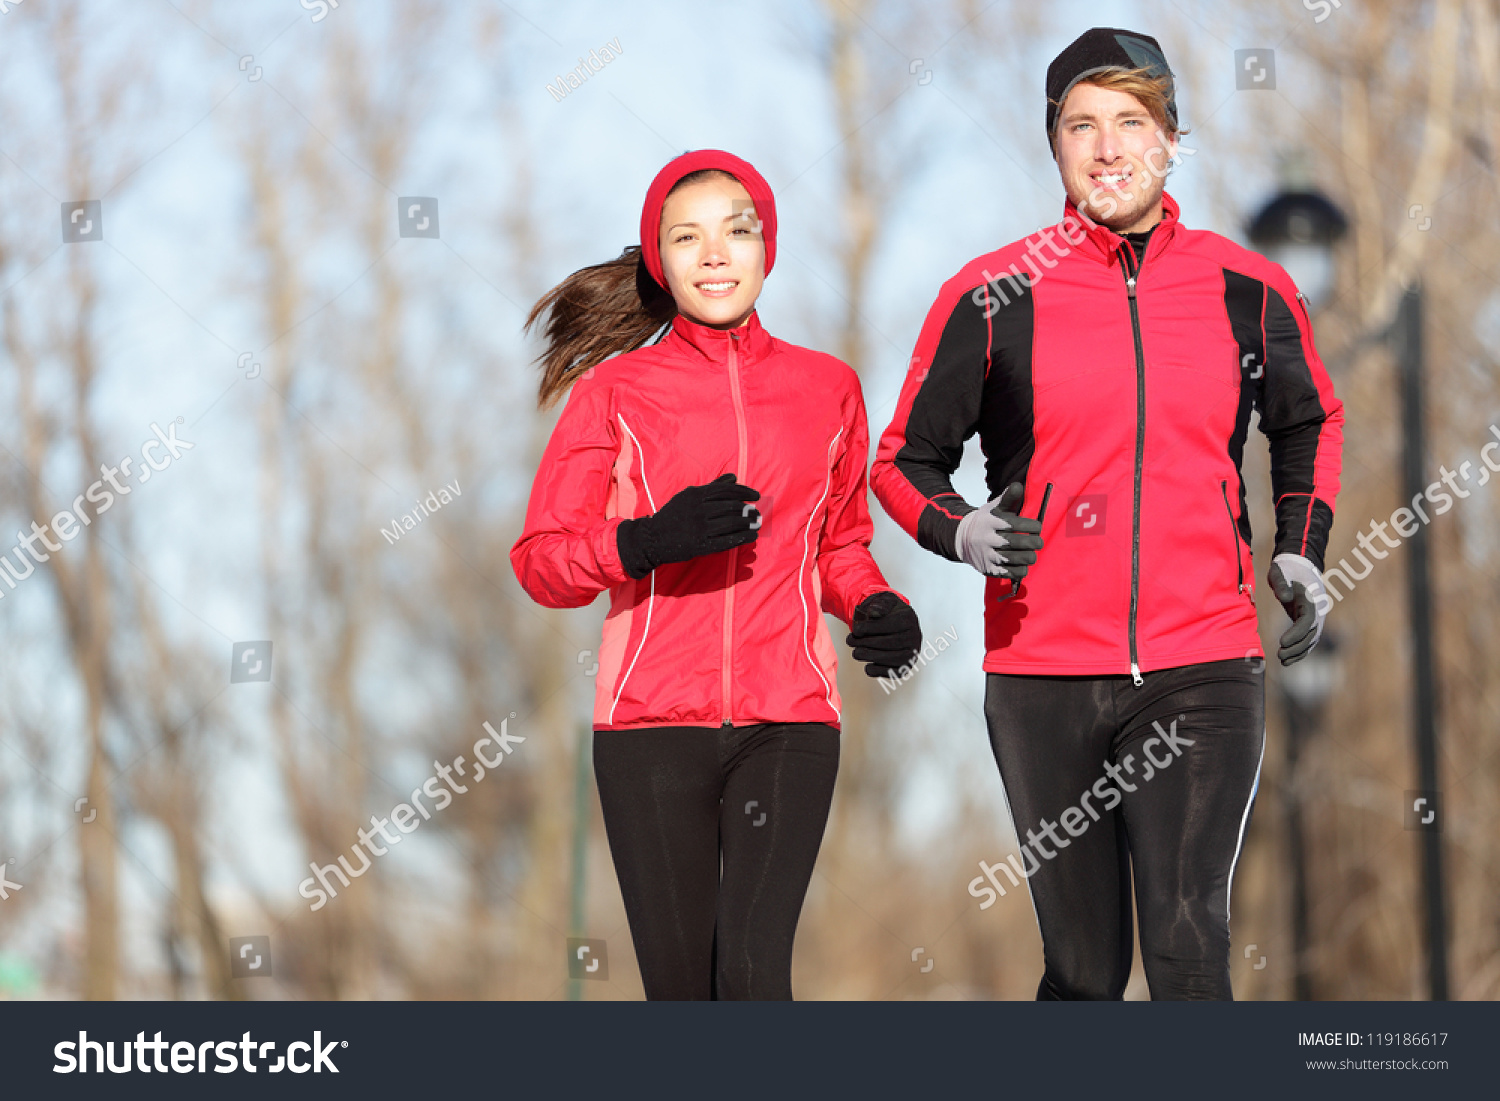 Running. Runners jogging outside. Young couple training outside in warm sport clothing outfit.